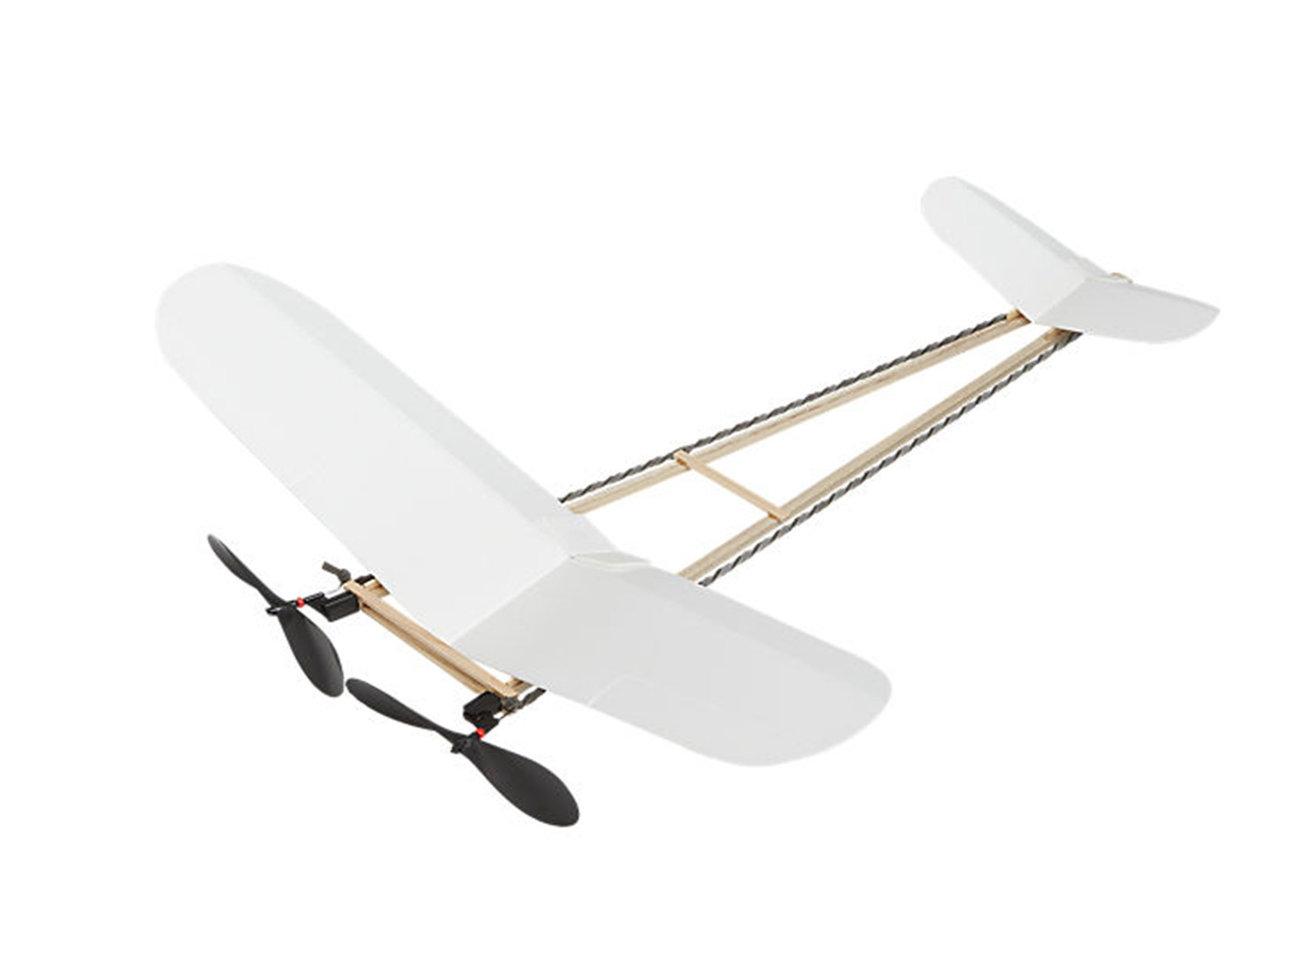 model-airplane-home-gg1115.jpg